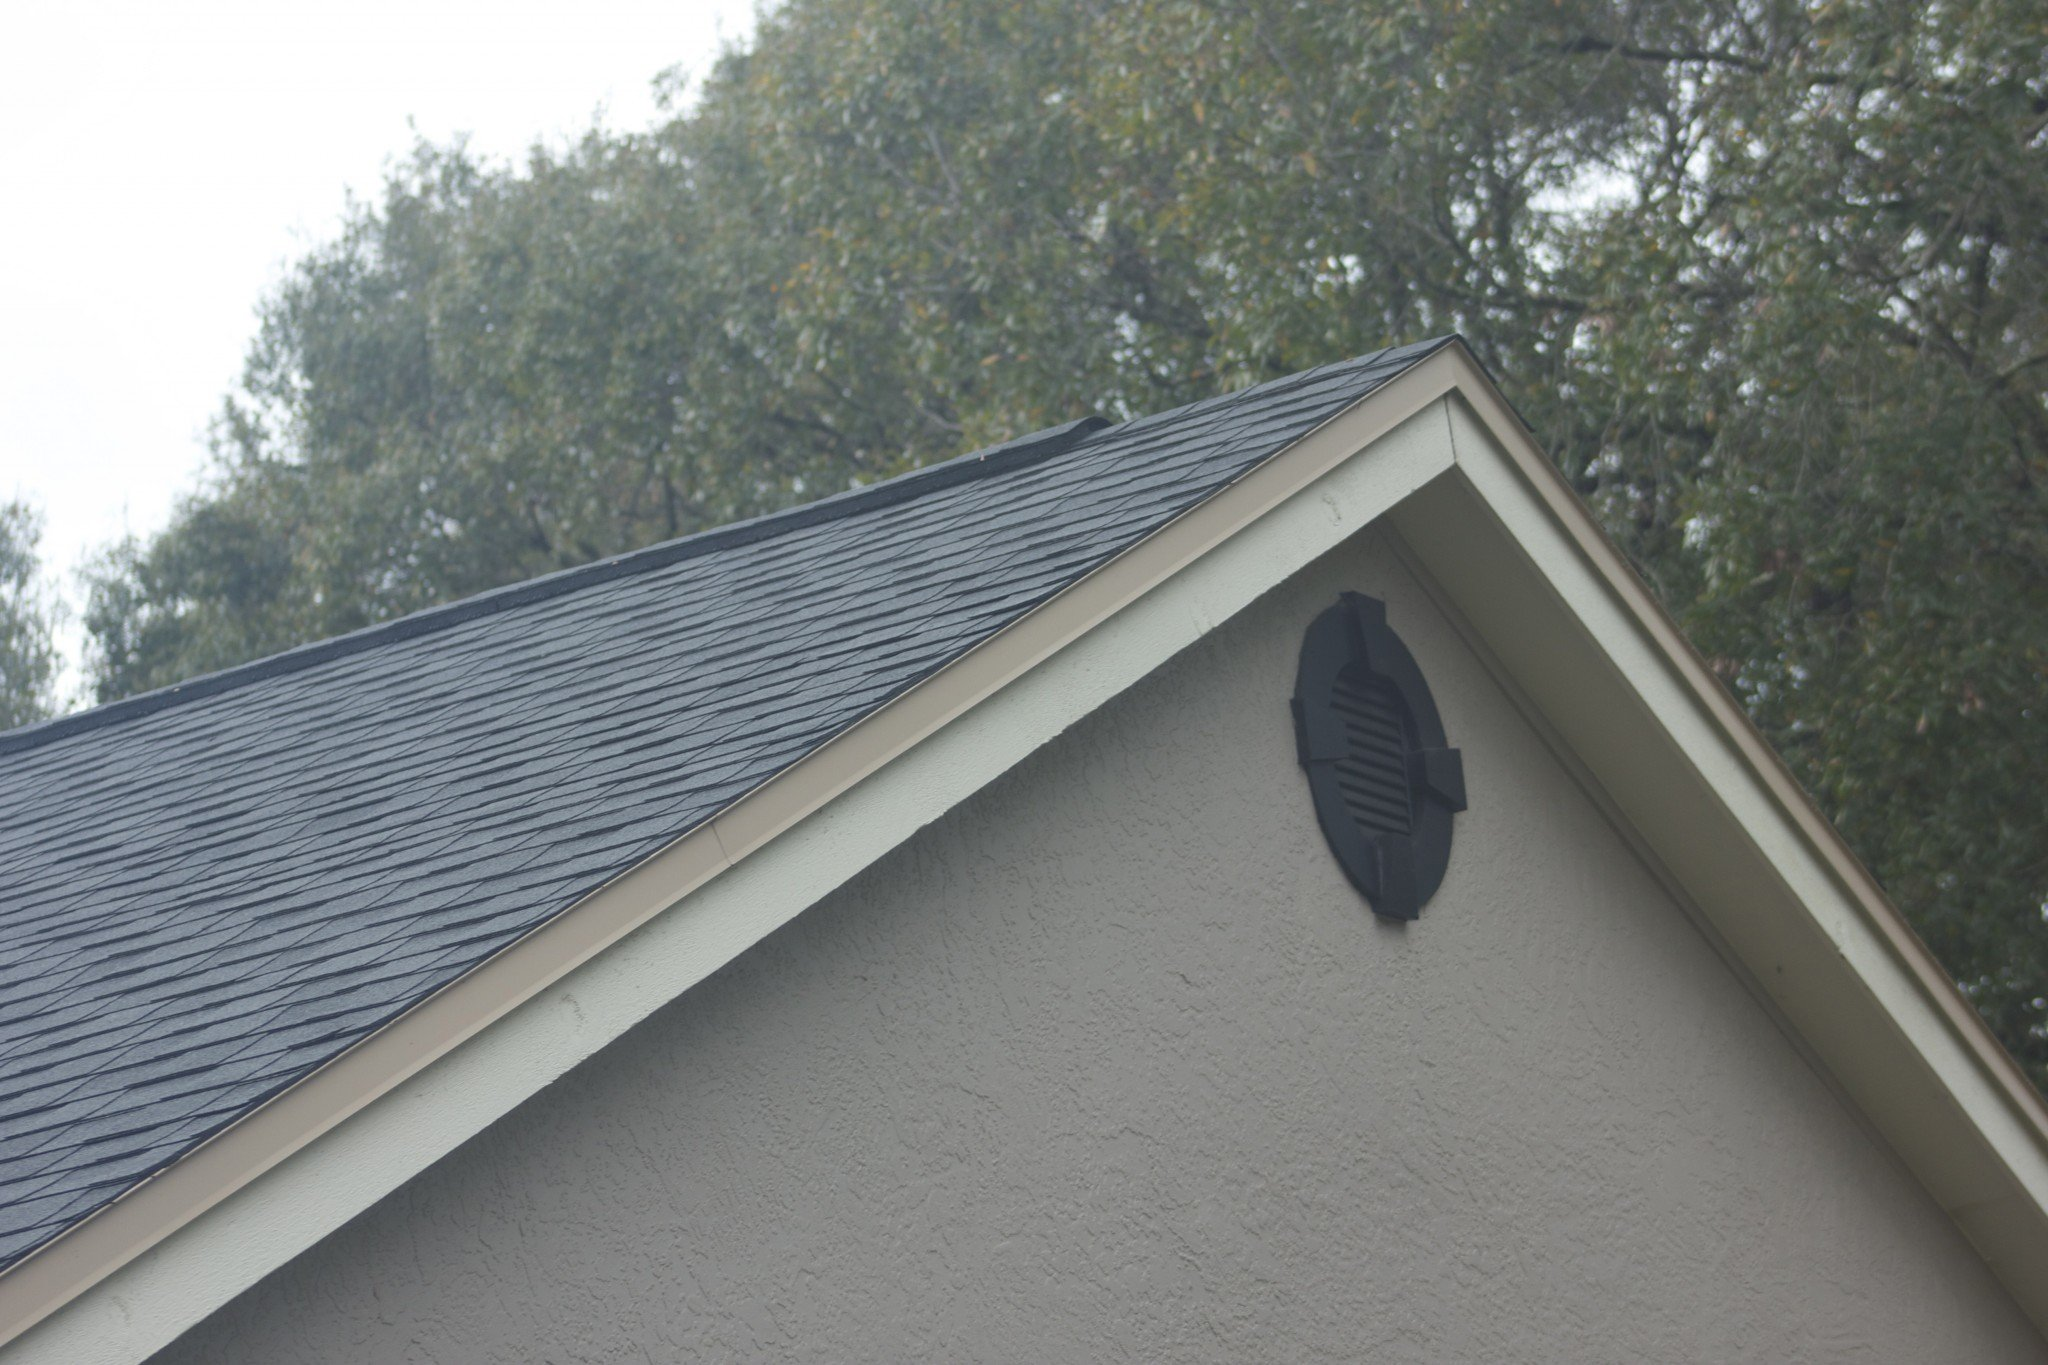 Landmark Pro Shingles In New Port Richey The Roofing